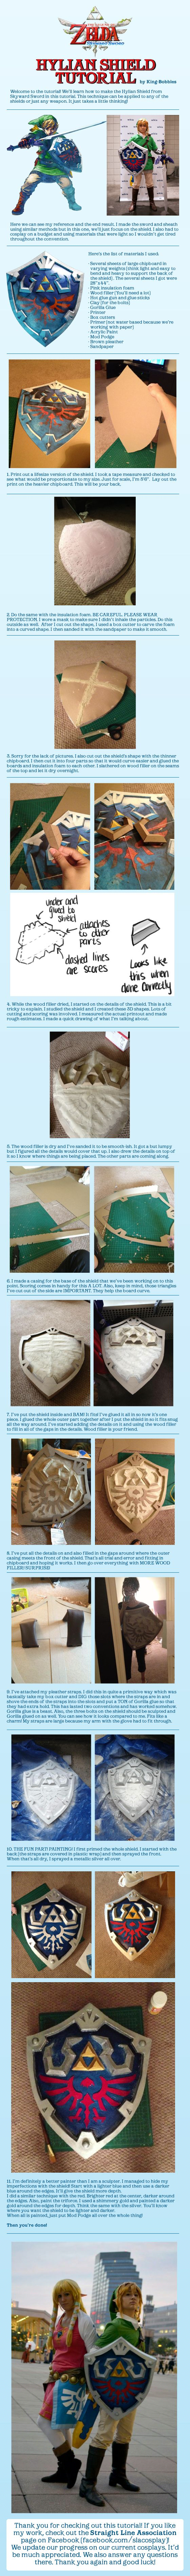 The legend of zelda hylian shield cosplay tutorial by king bobbles the legend of zelda hylian shield cosplay tutorial by king bobbles baditri Images